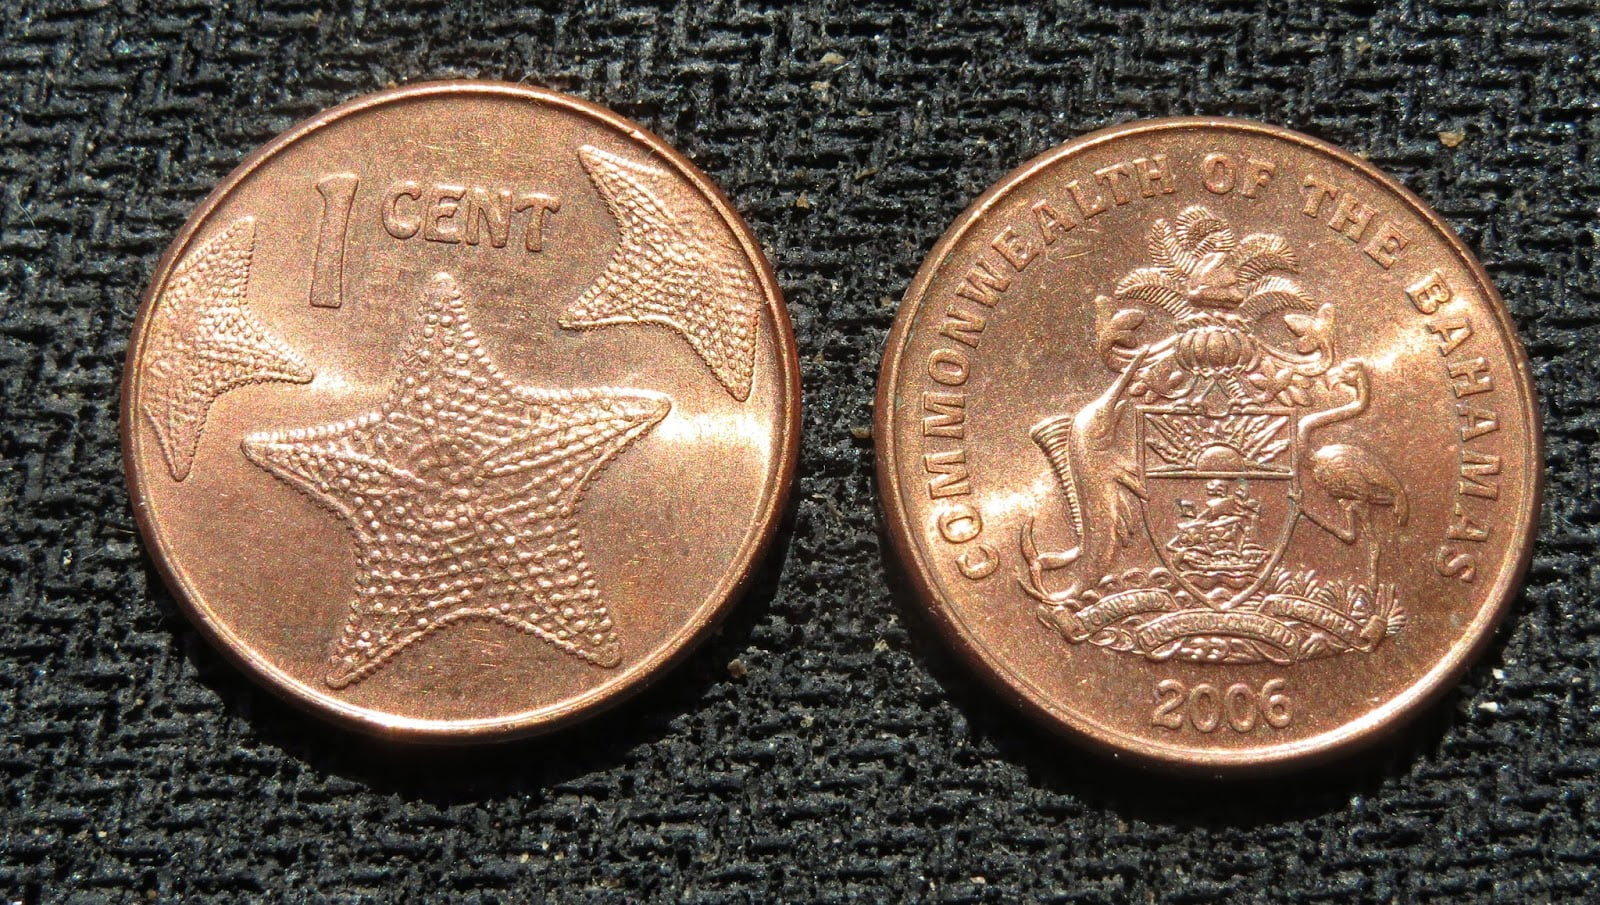 Central Bank proposing elimination of 1 cent coin effective Dec. 31, 2020